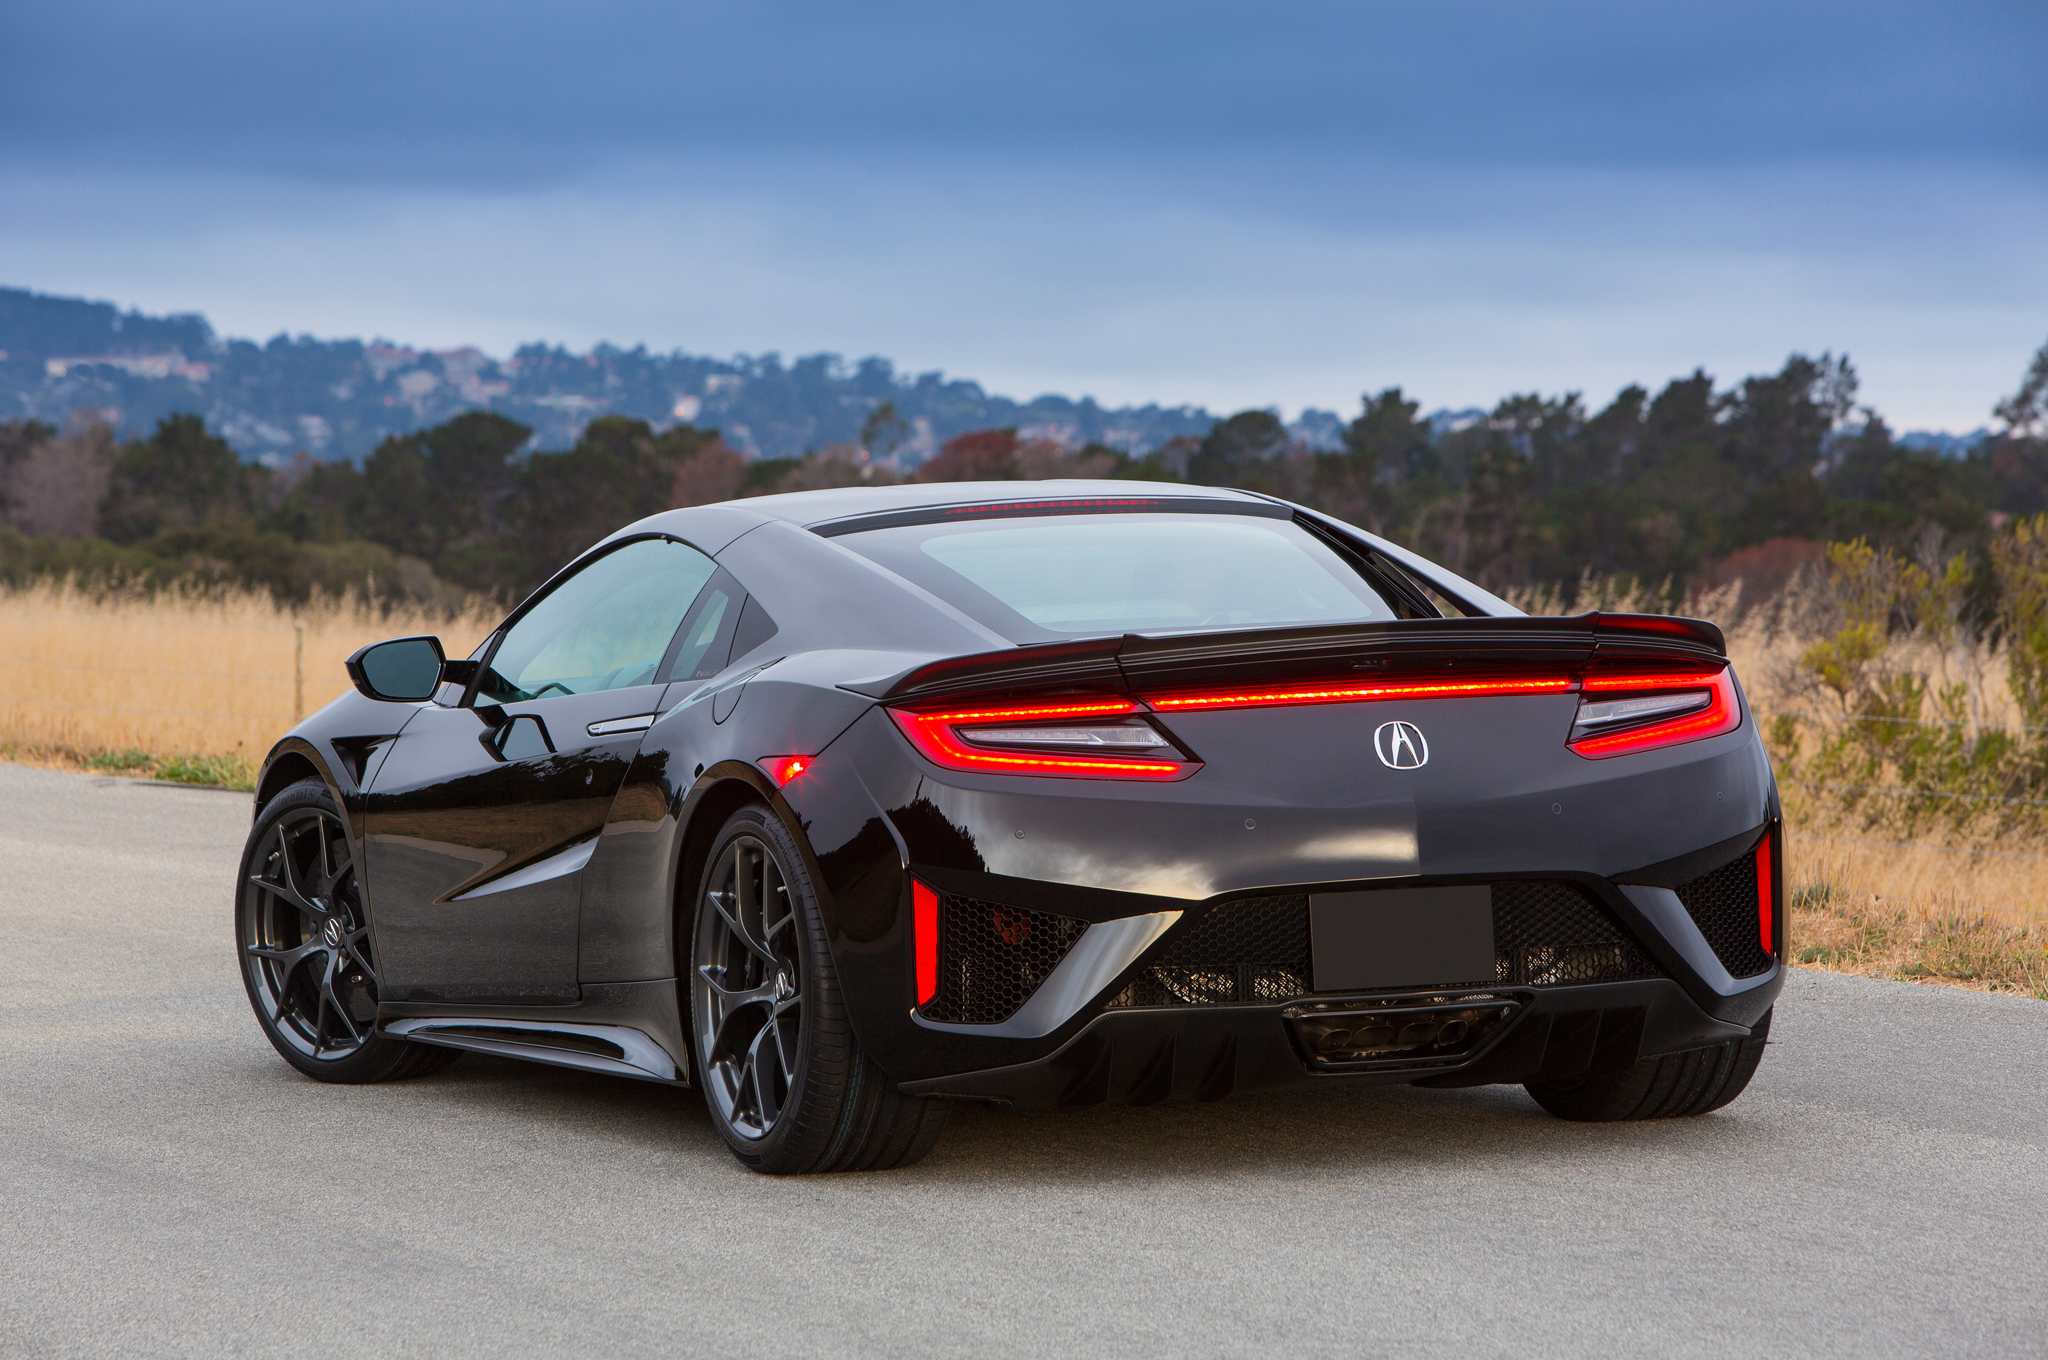 Honda Sports Car Ceo Says We Shouldnt Expect Any New Cars 421 2017 Acura Nsx At The Quail Rear End 02 Jpg